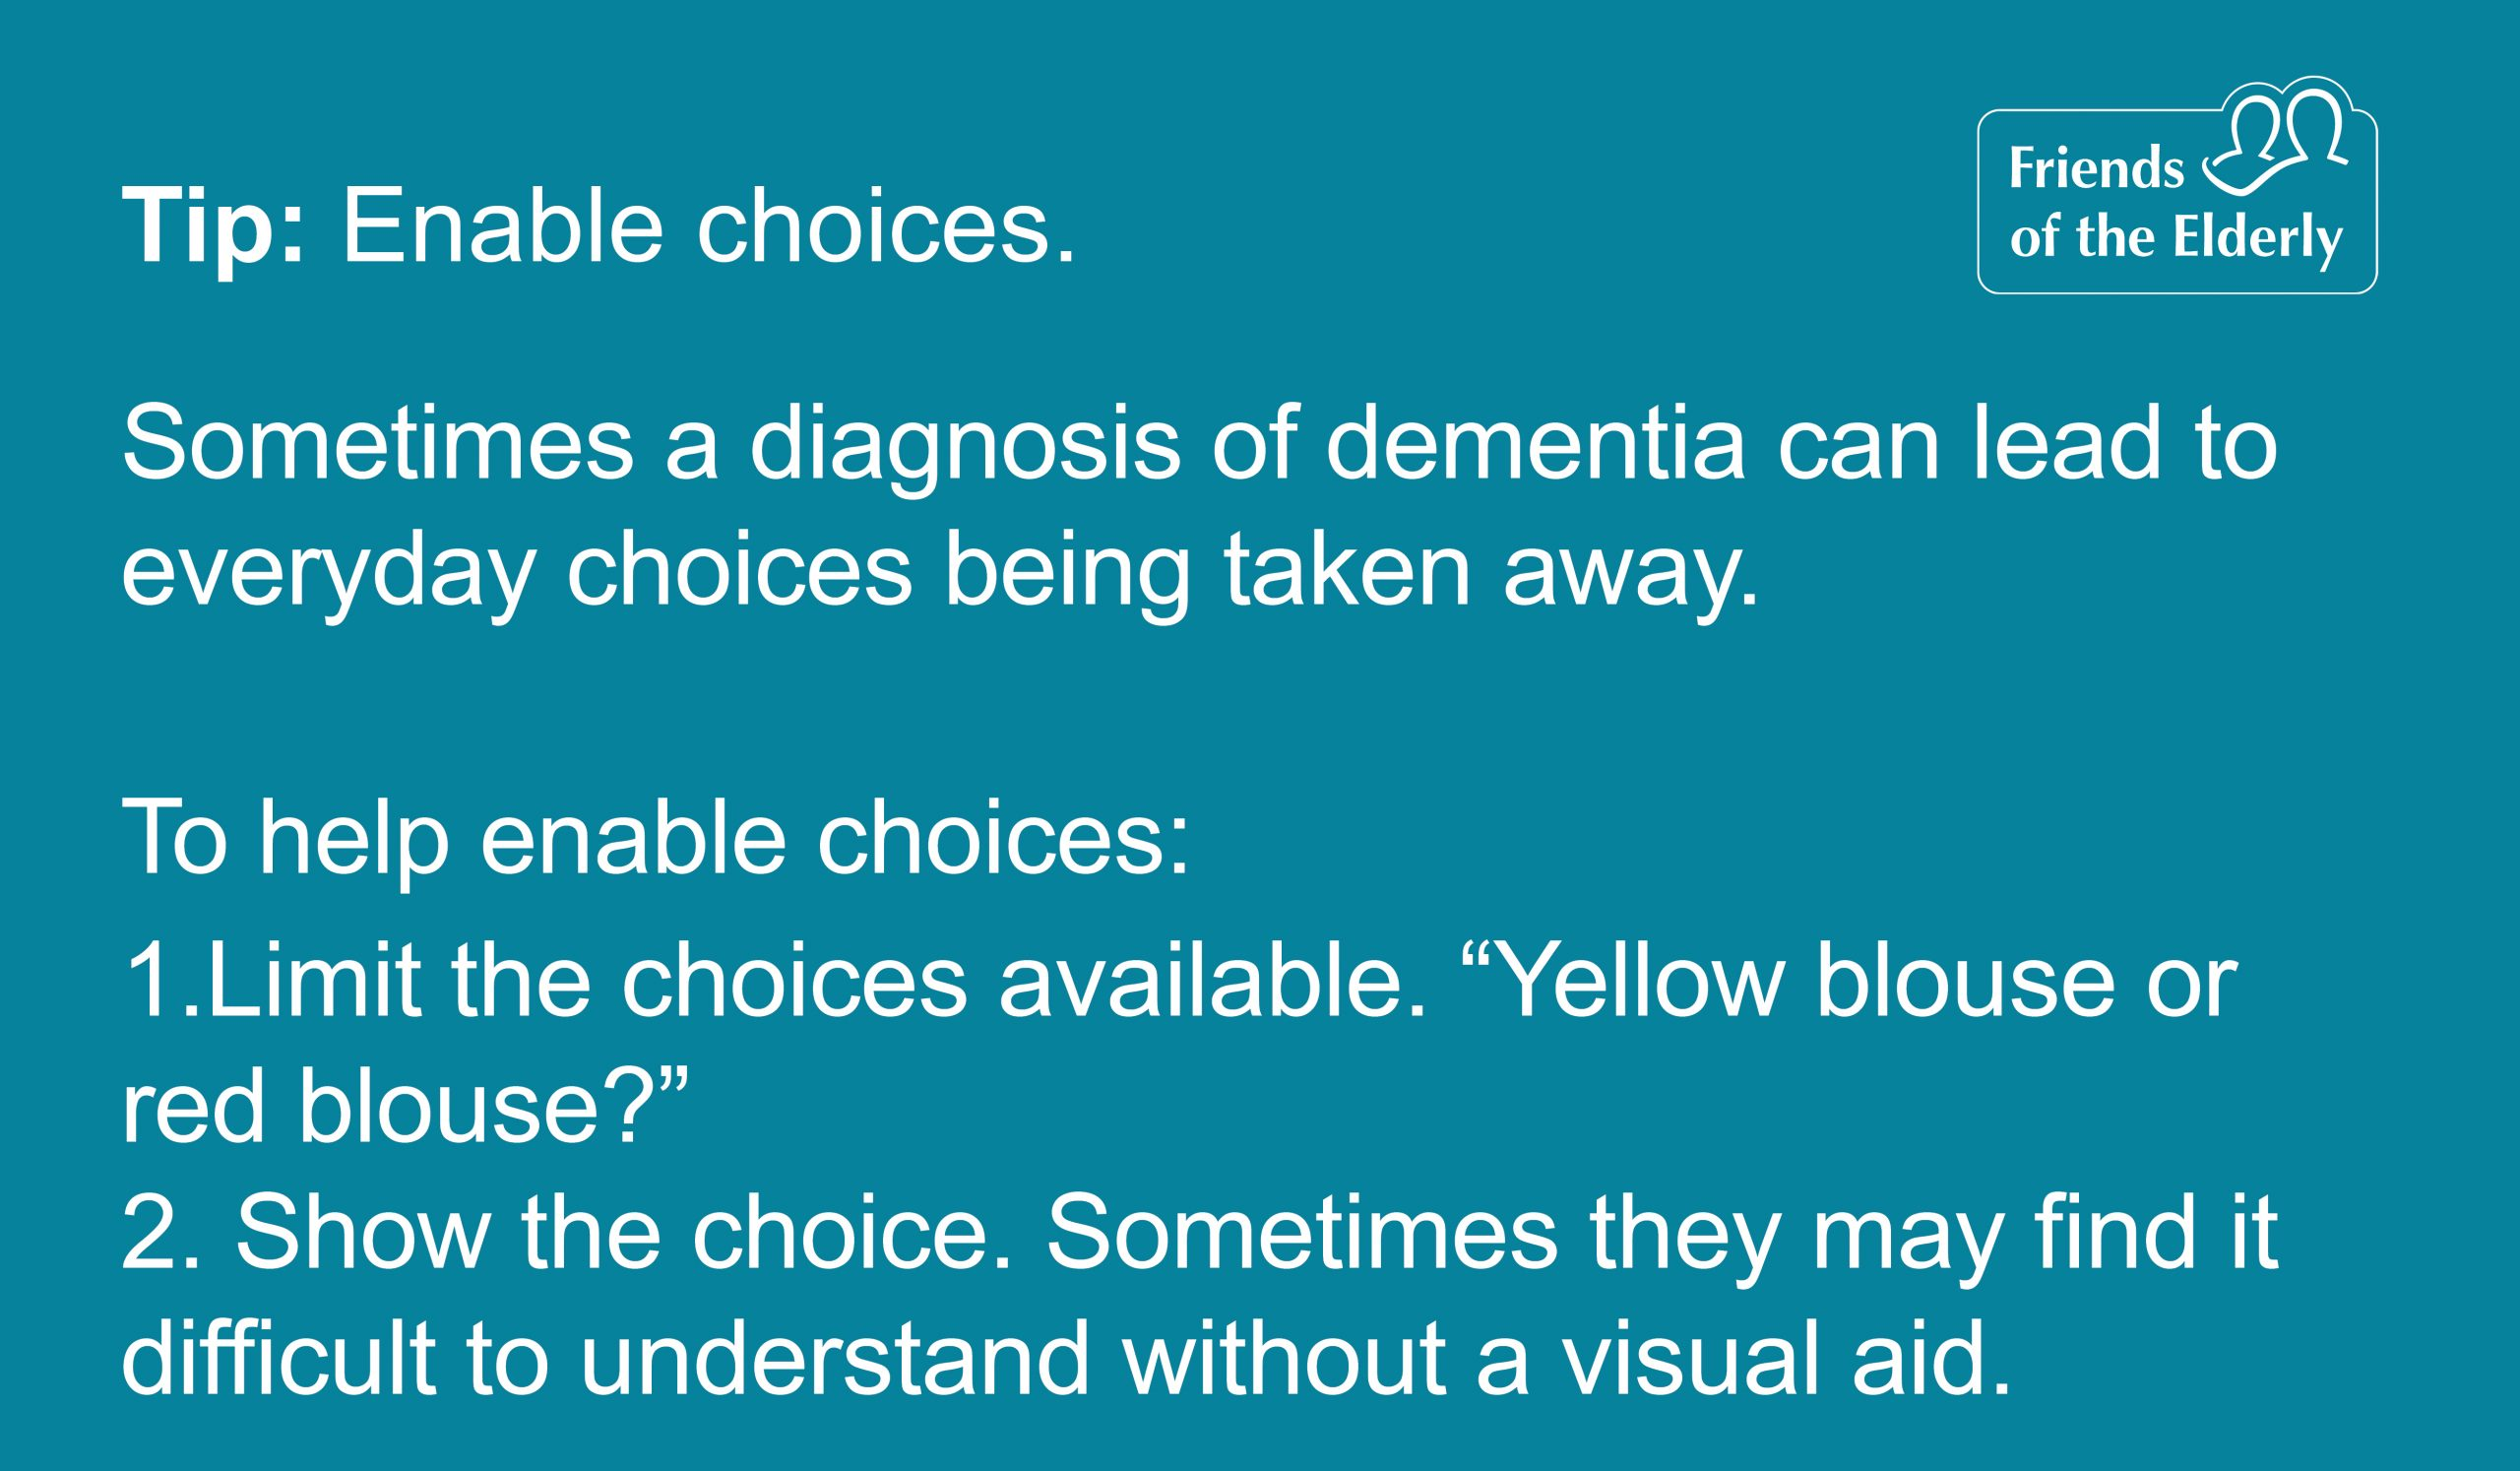 """Tip 3: Enabling choices. Sometimes a diagnosis of dementia can lead to everyday choices being taken away. To help enable choices: 1. Limit the choices available. """"Yellow blouse or red blouse?"""". 2. Show the choice. Sometimes they may find it difficult to understand without a visual aid."""